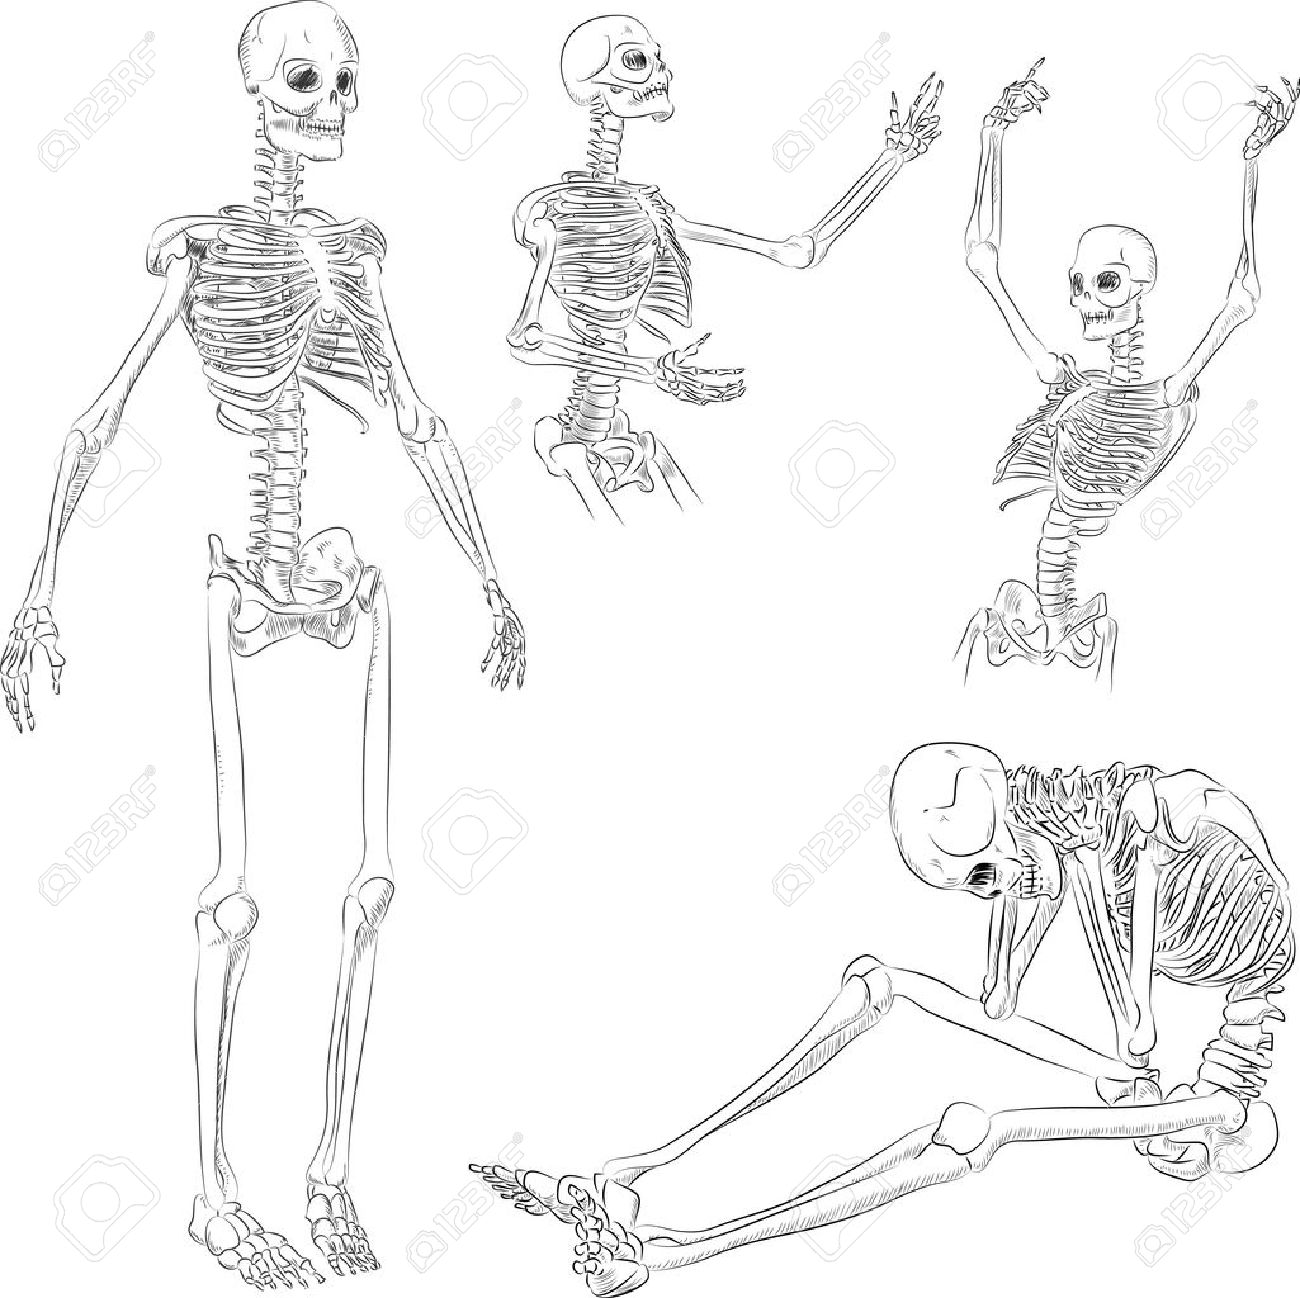 Human skeleton in different active poses sketch